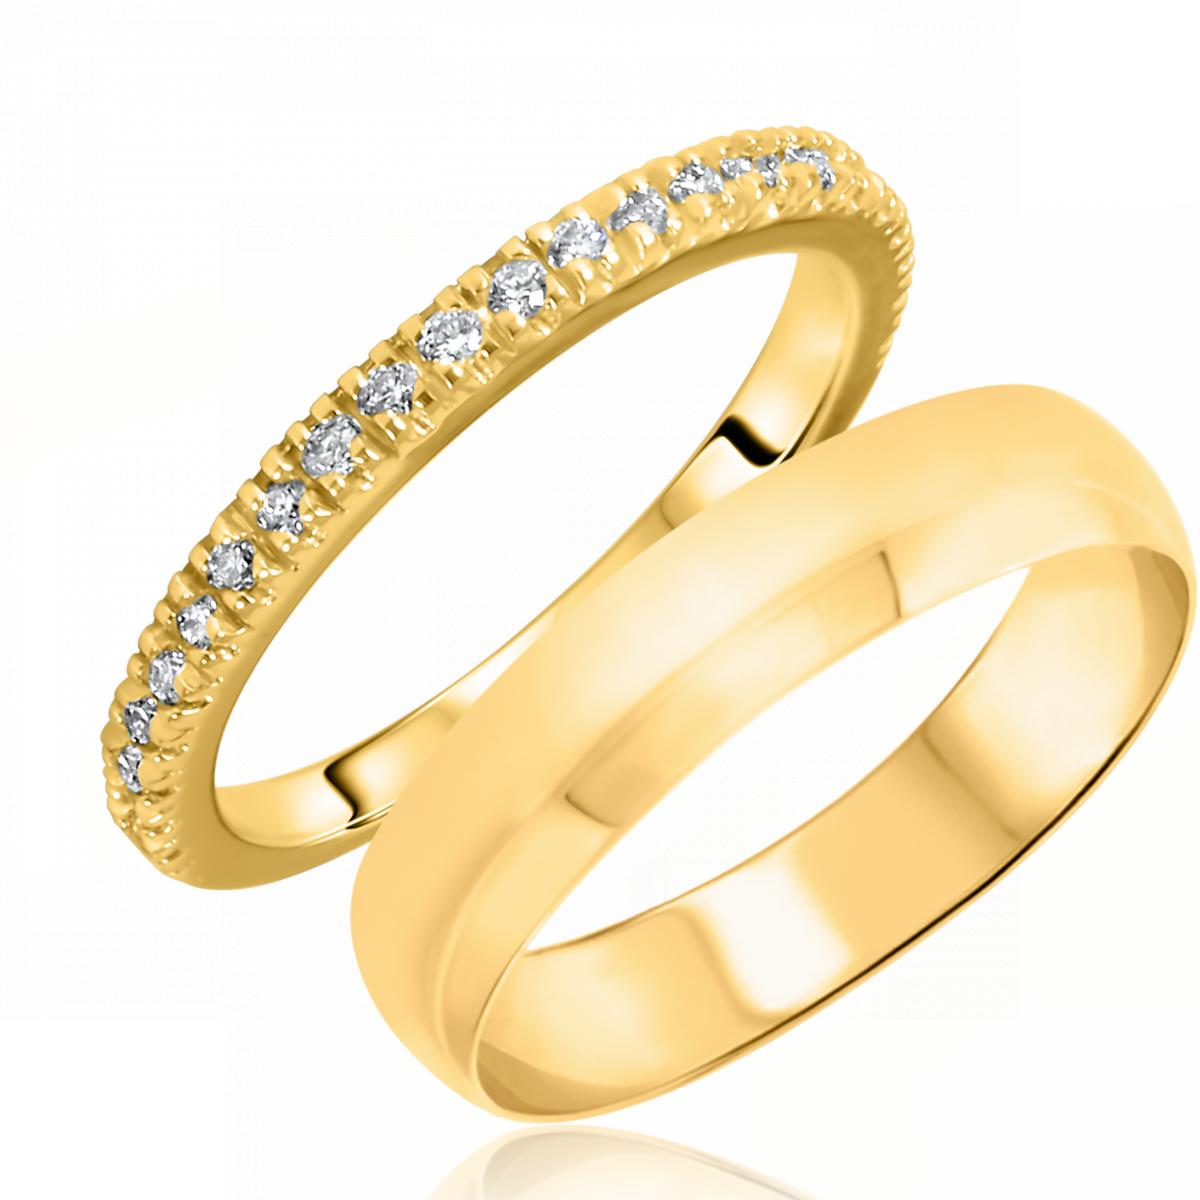 1/4 Carat T.W. Round Cut Diamond His and Hers Wedding Band Set 10K Yellow Gold